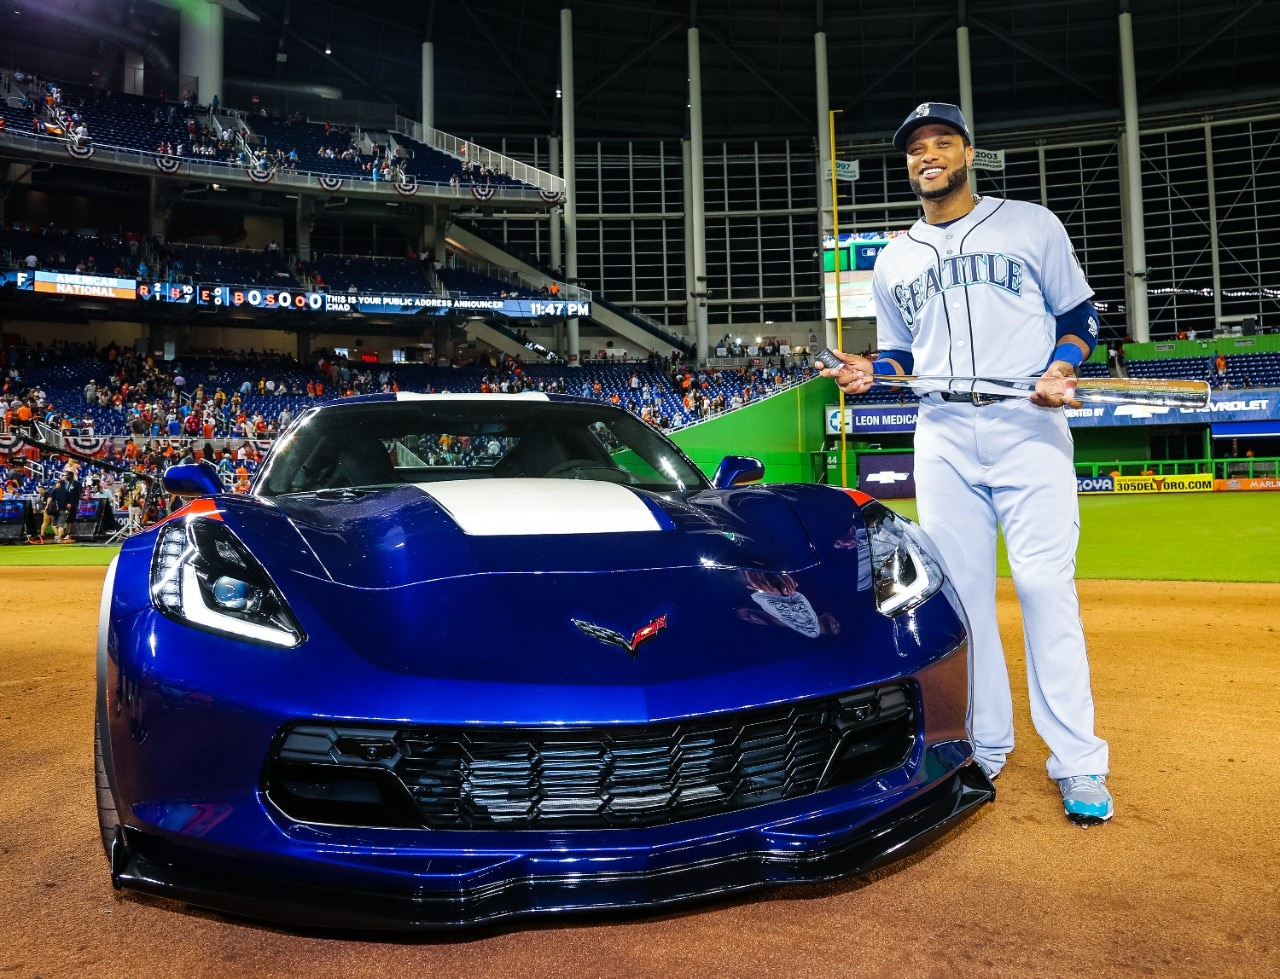 Robinson Canó and new Corvette Grand Sport